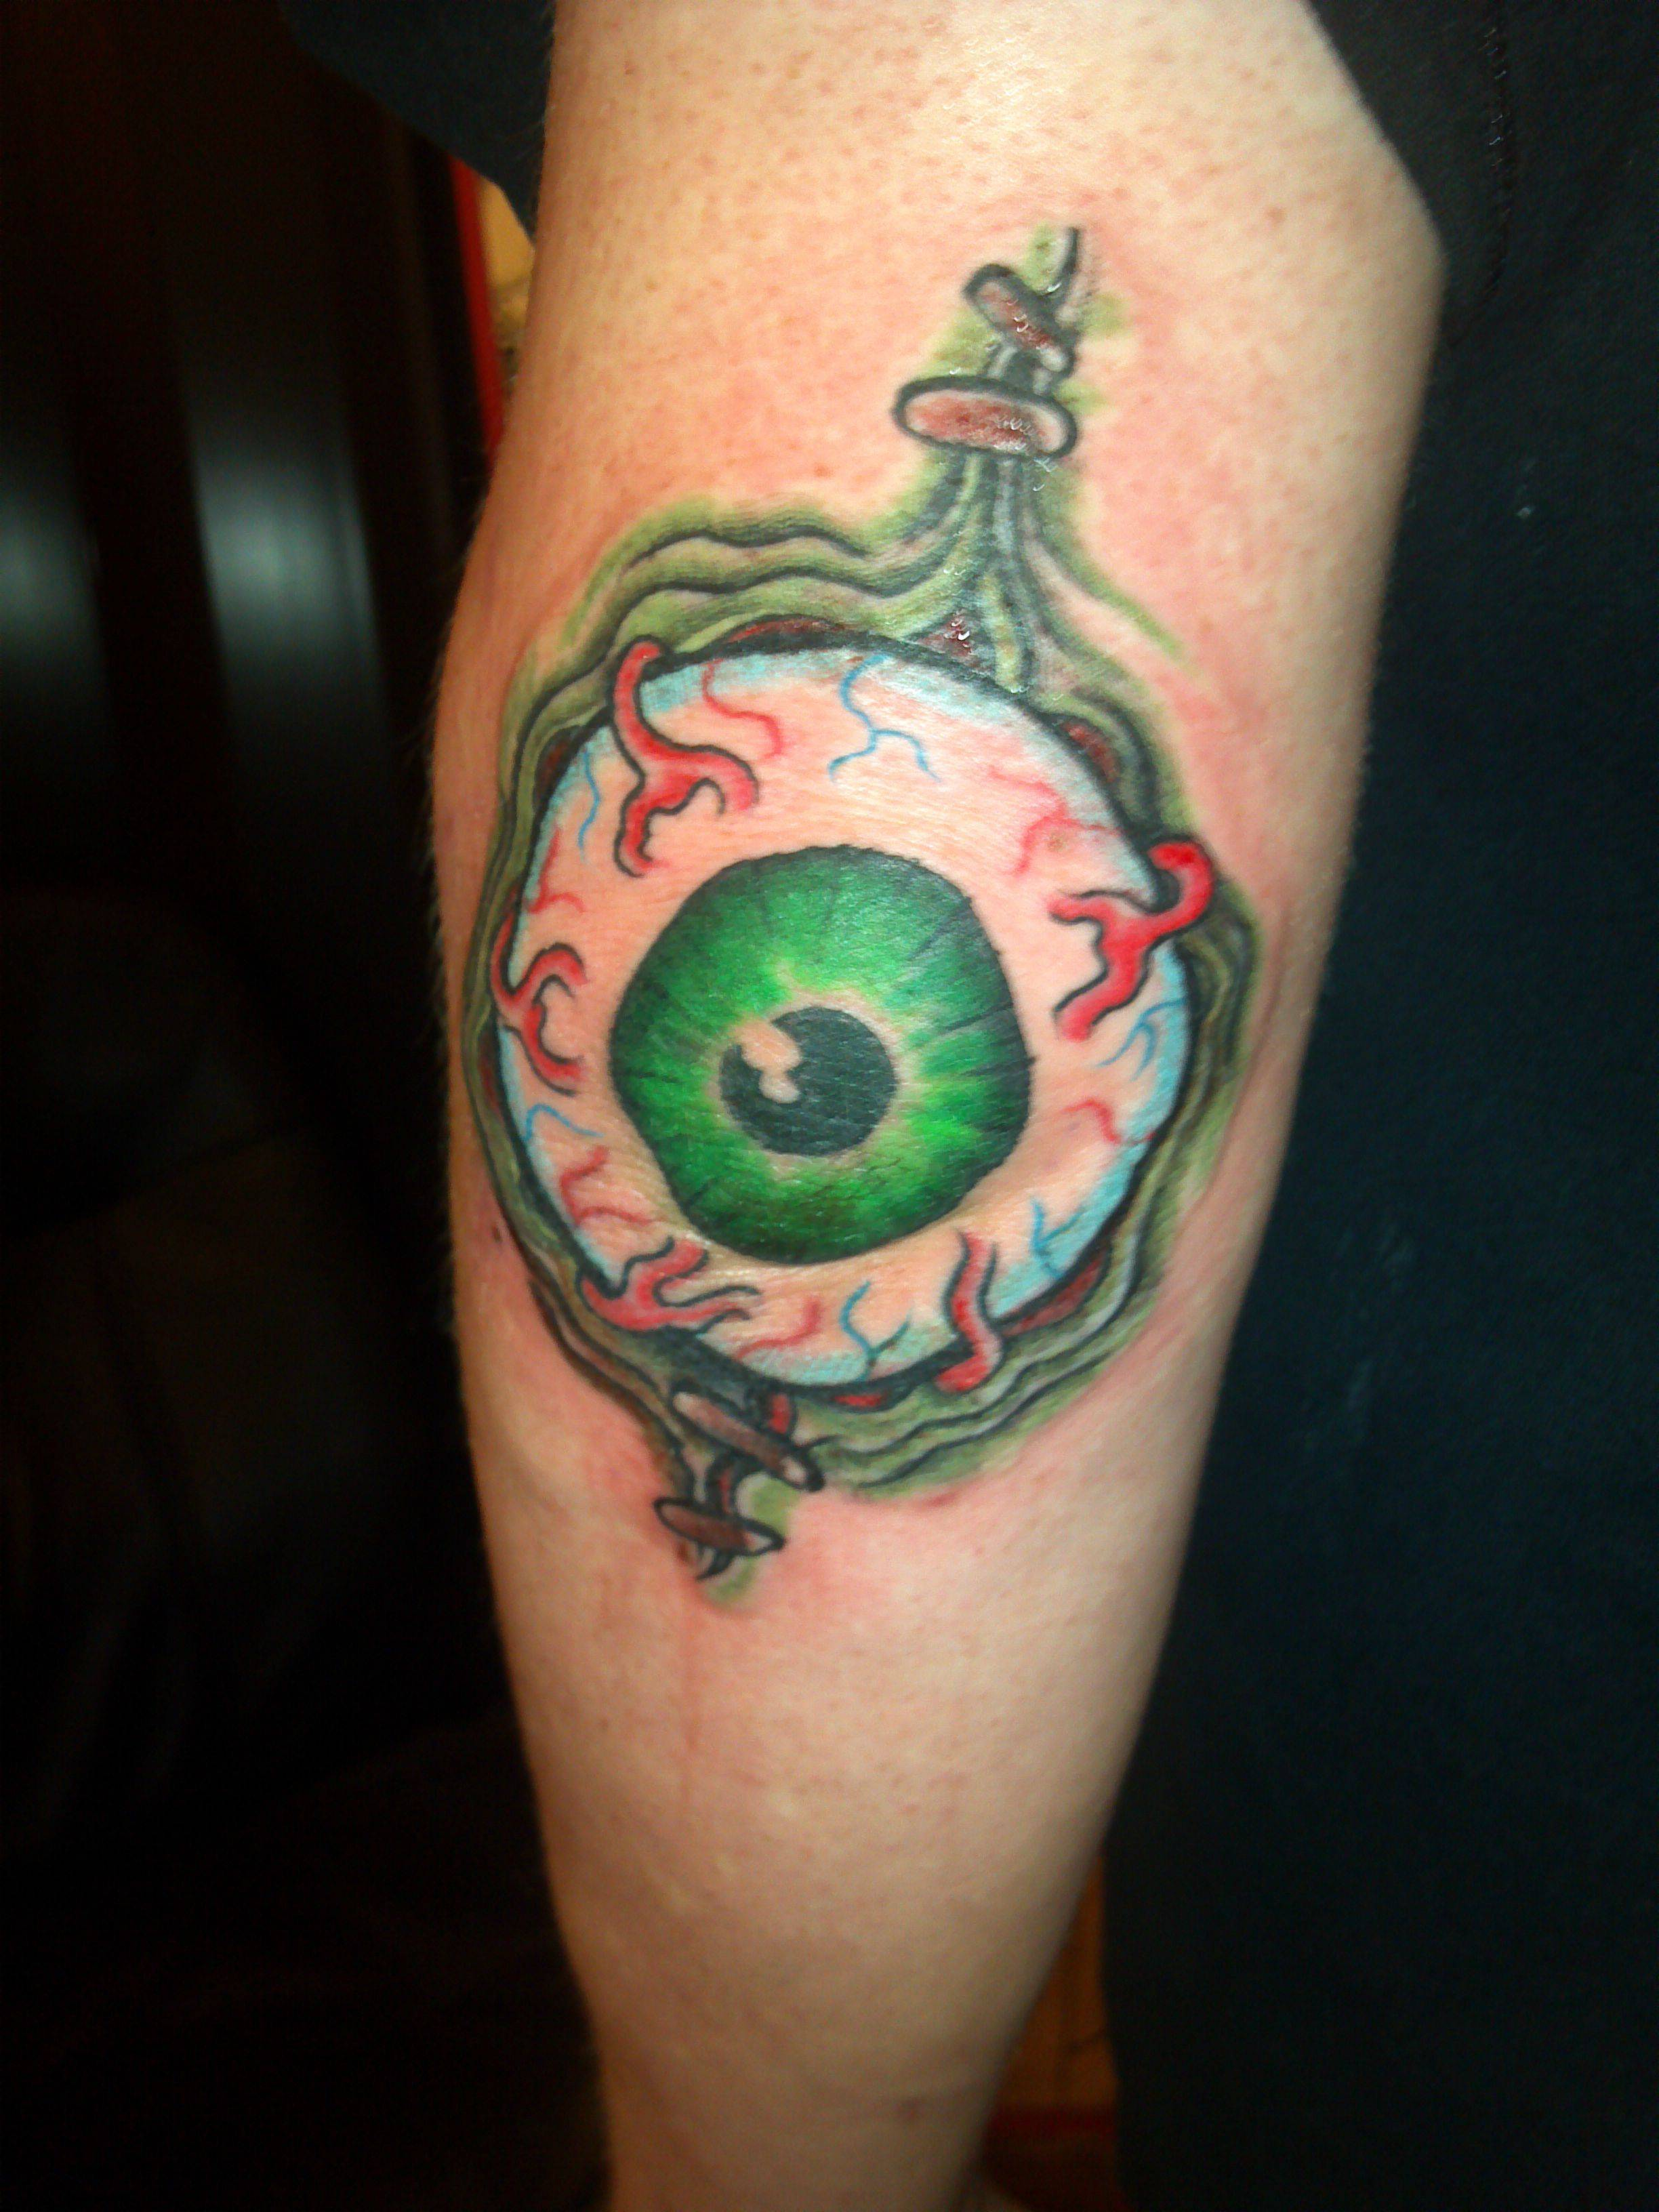 Green Eye Elbow Tattoo Design